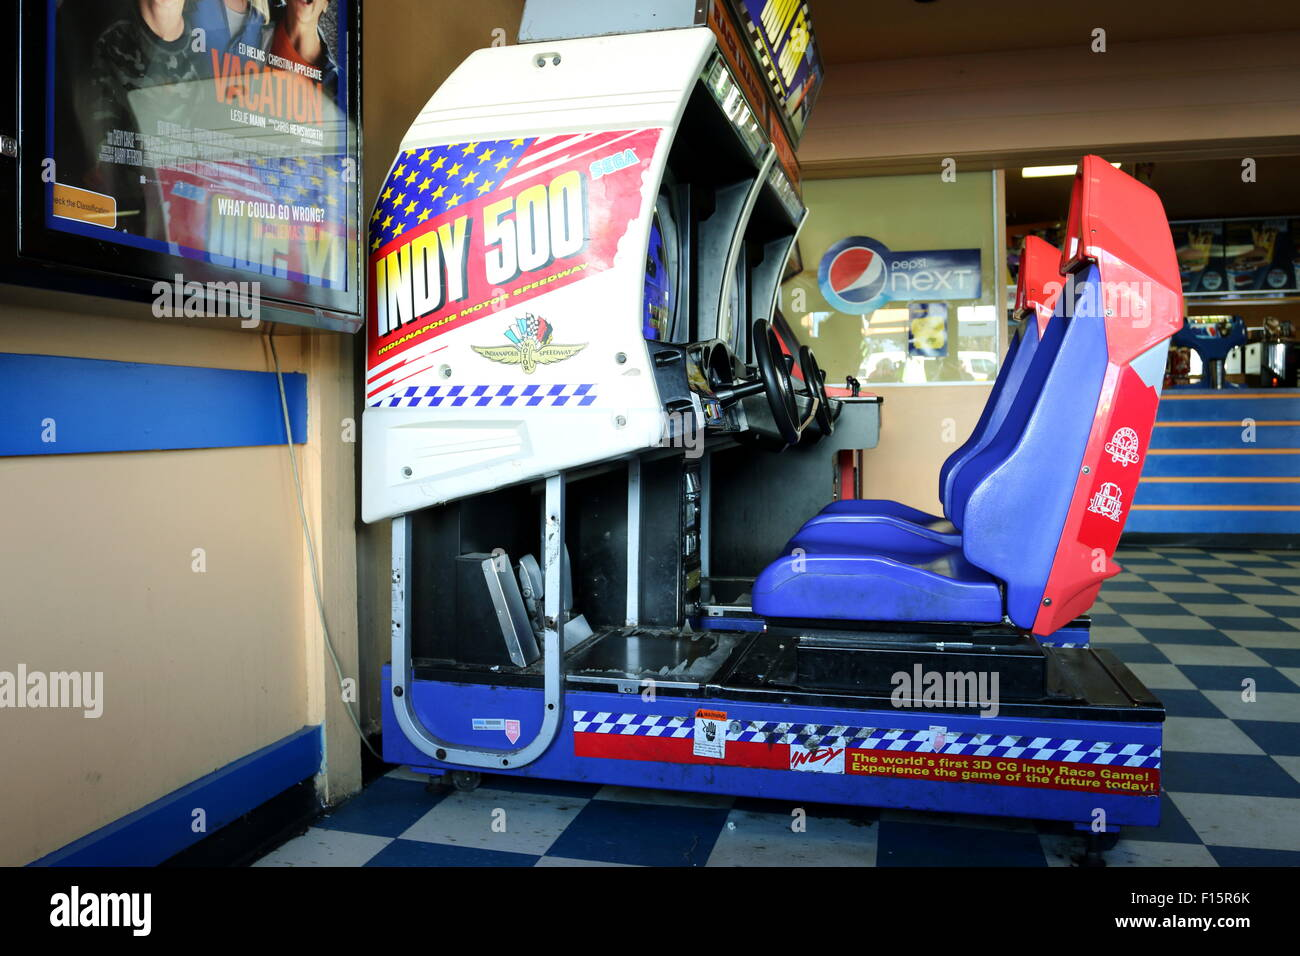 Video arcade game - Stock Image